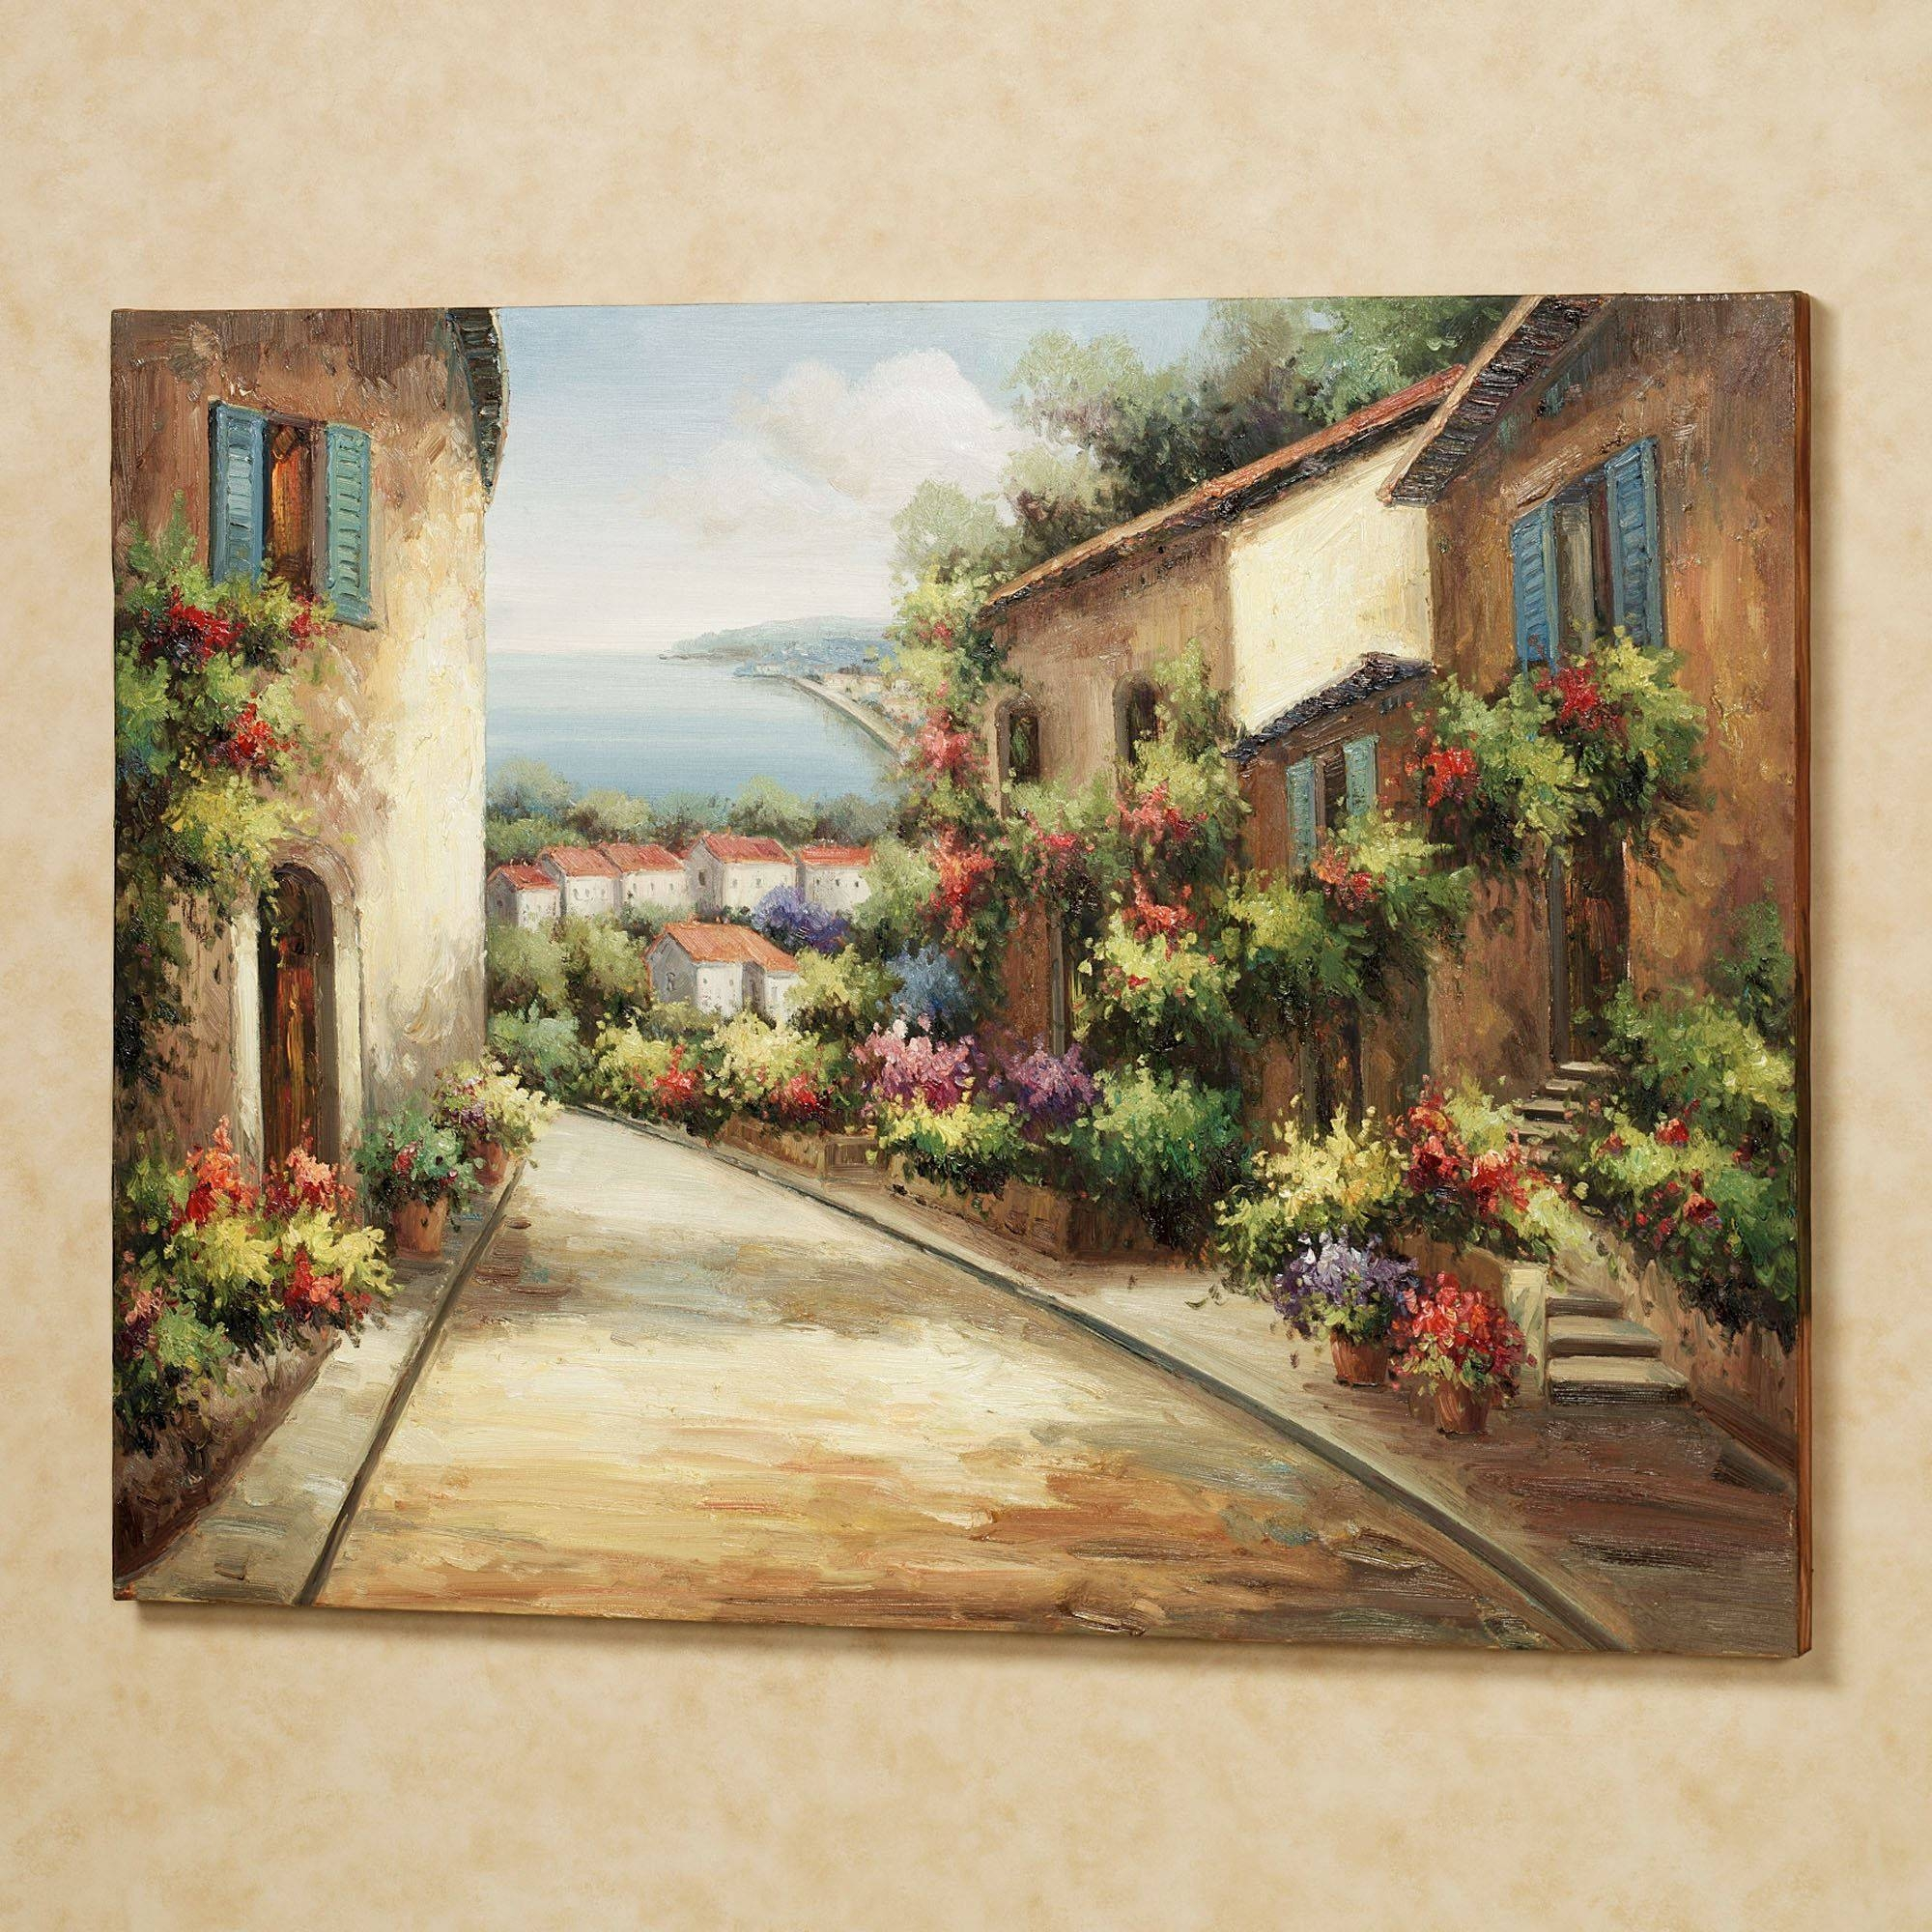 Streets Of Tuscany Canvas Wall Art Inside Most Popular Tuscany Wall Art (View 9 of 20)